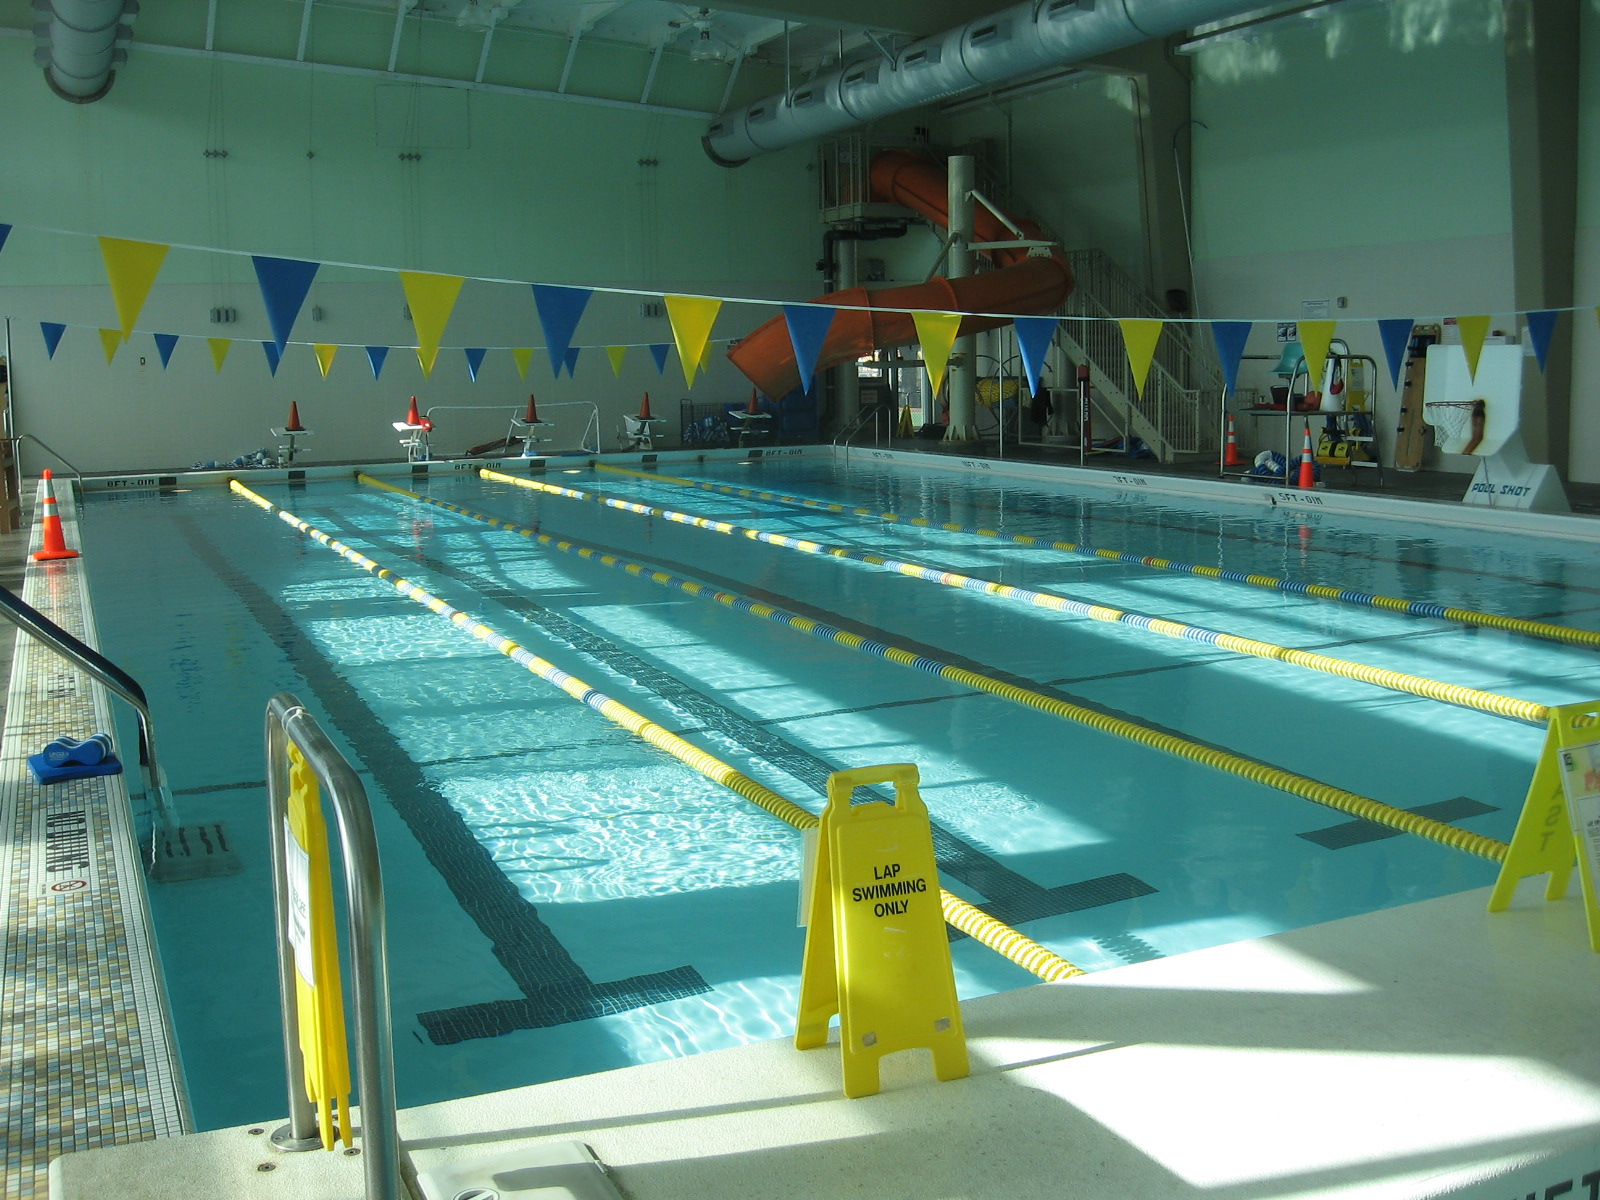 The Hamilton Recreation Center attracts families with its outdoor play structure and popular indoor pool.